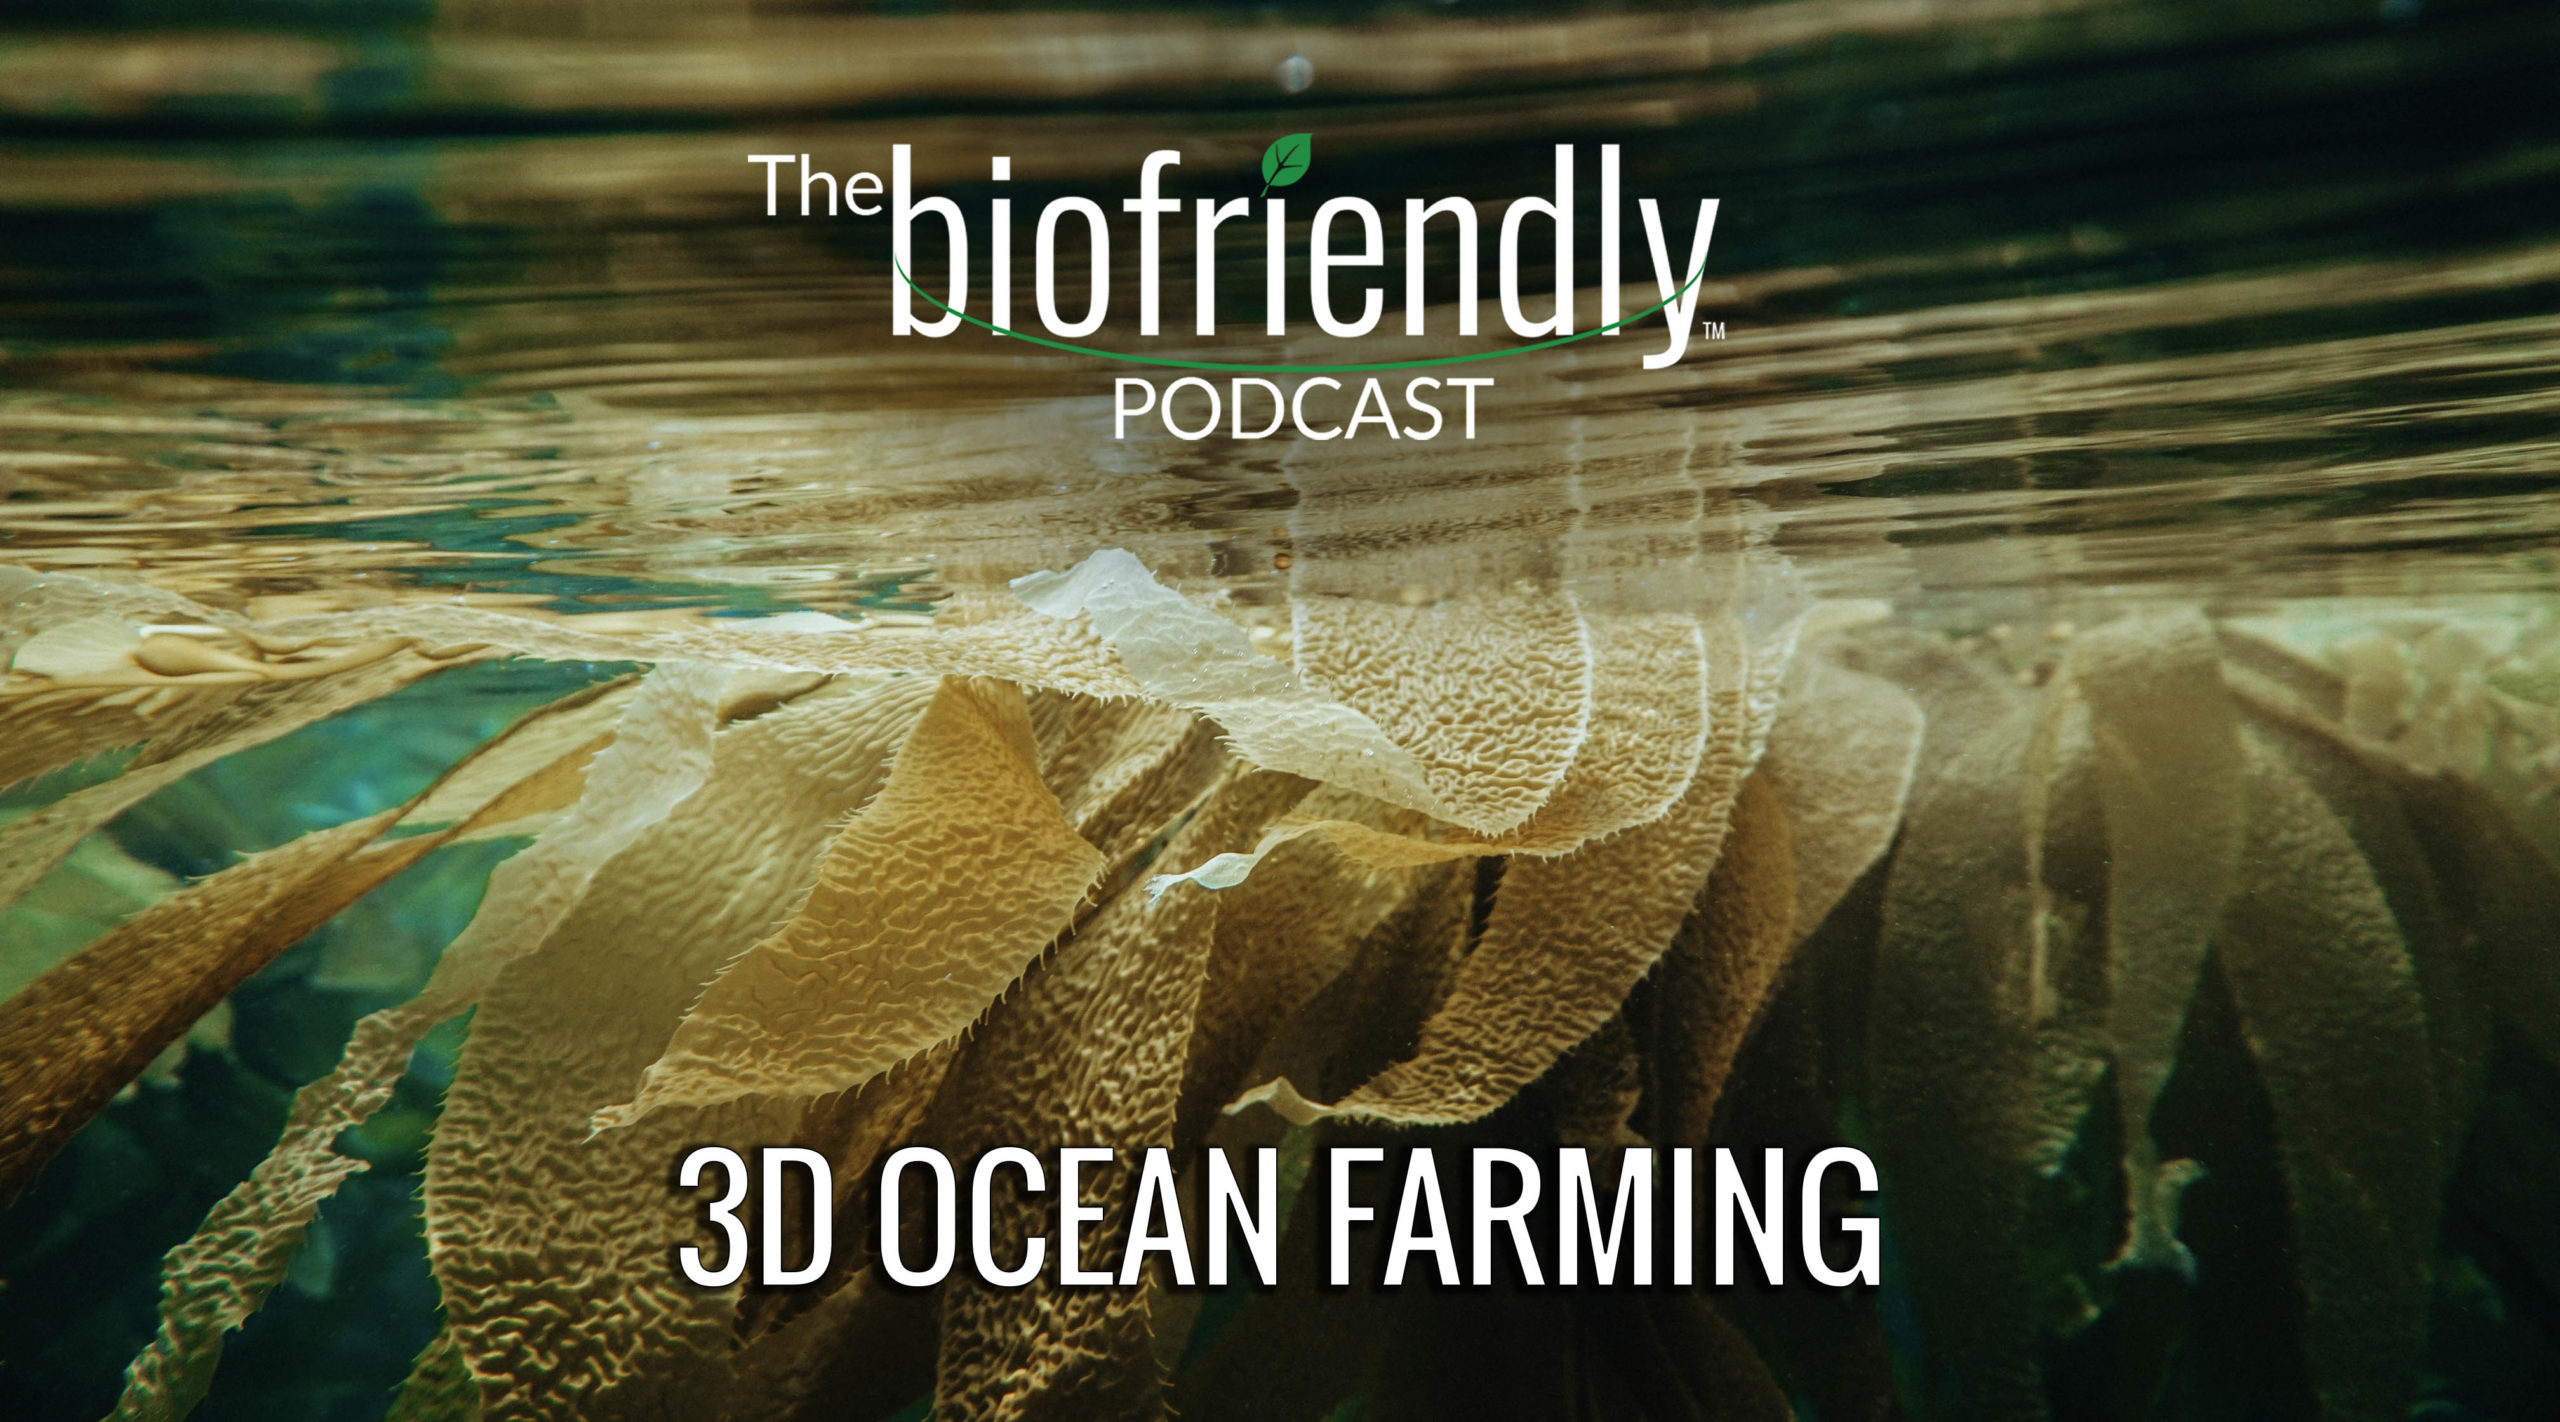 The Biofriendly Podcast - Episode 68 - 3D Ocean Farming